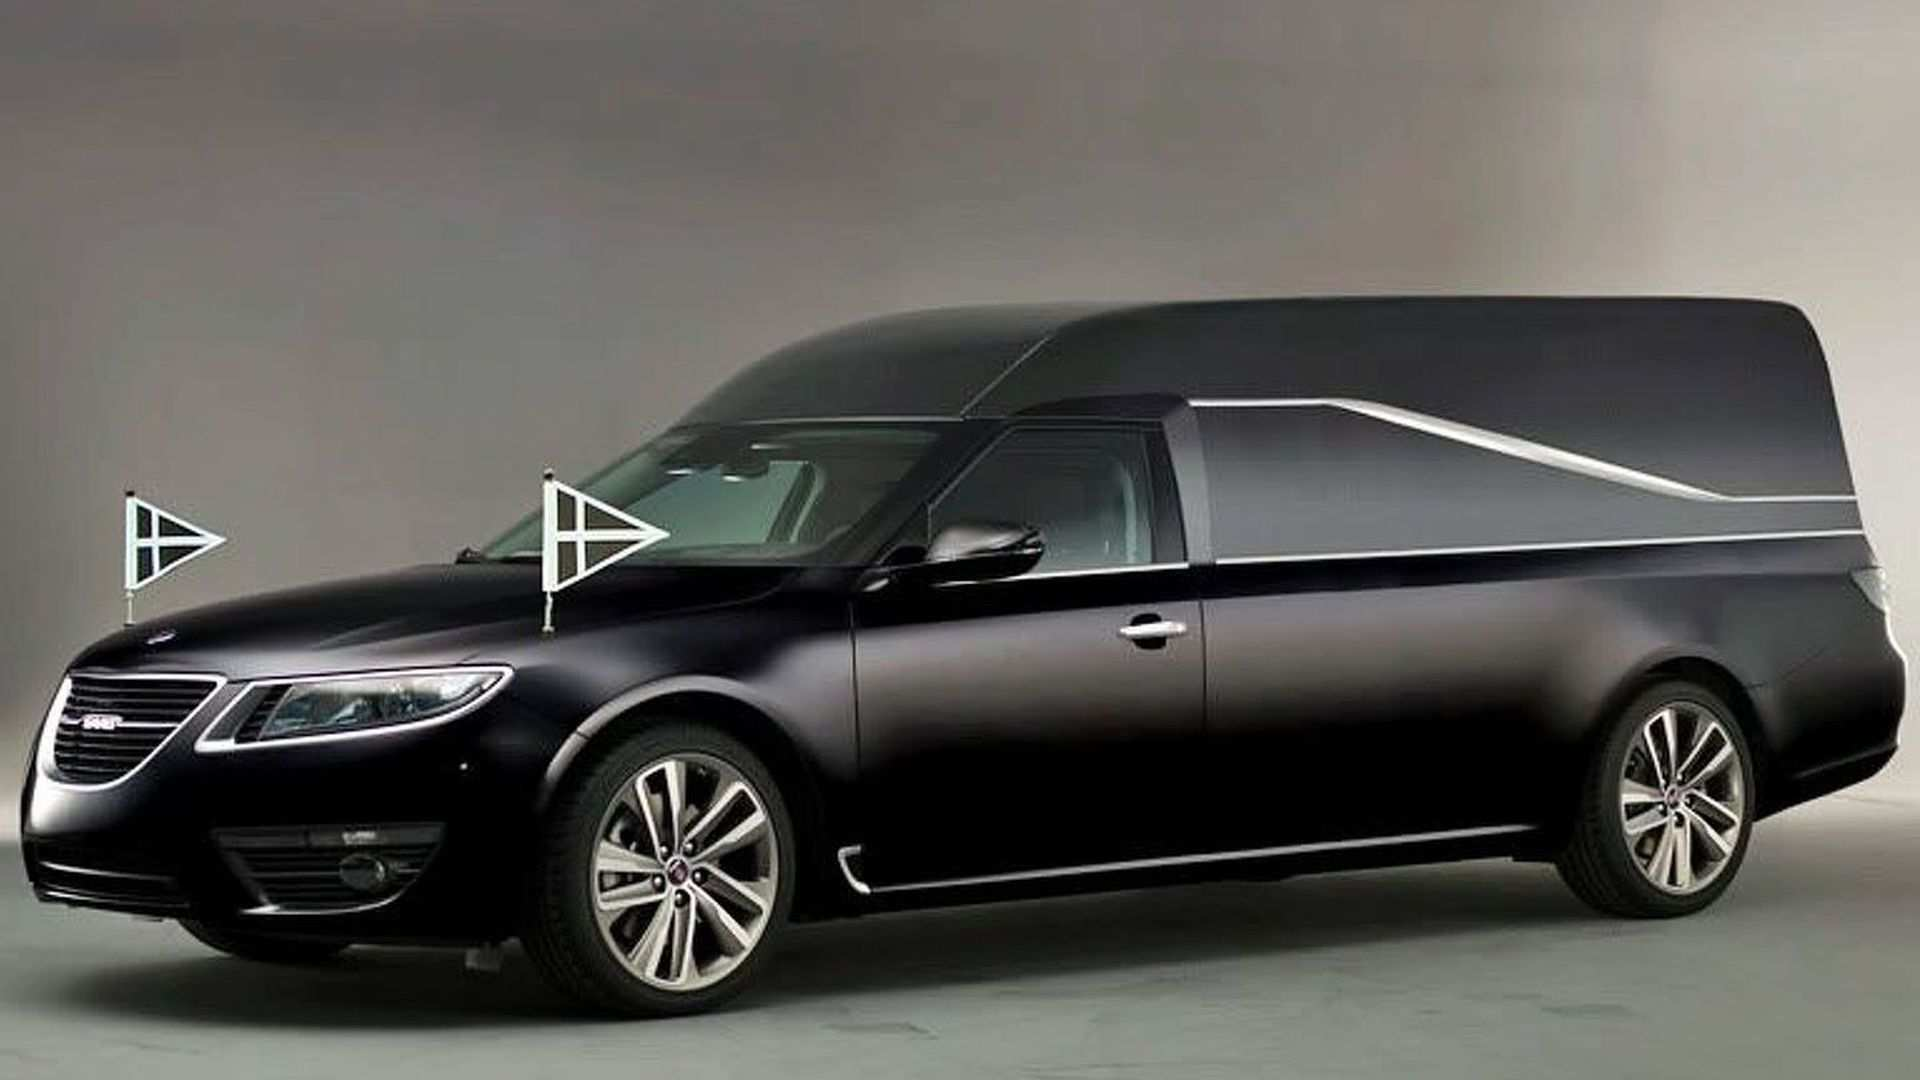 81 The Best 2020 Saab 9 5 New Model and Performance